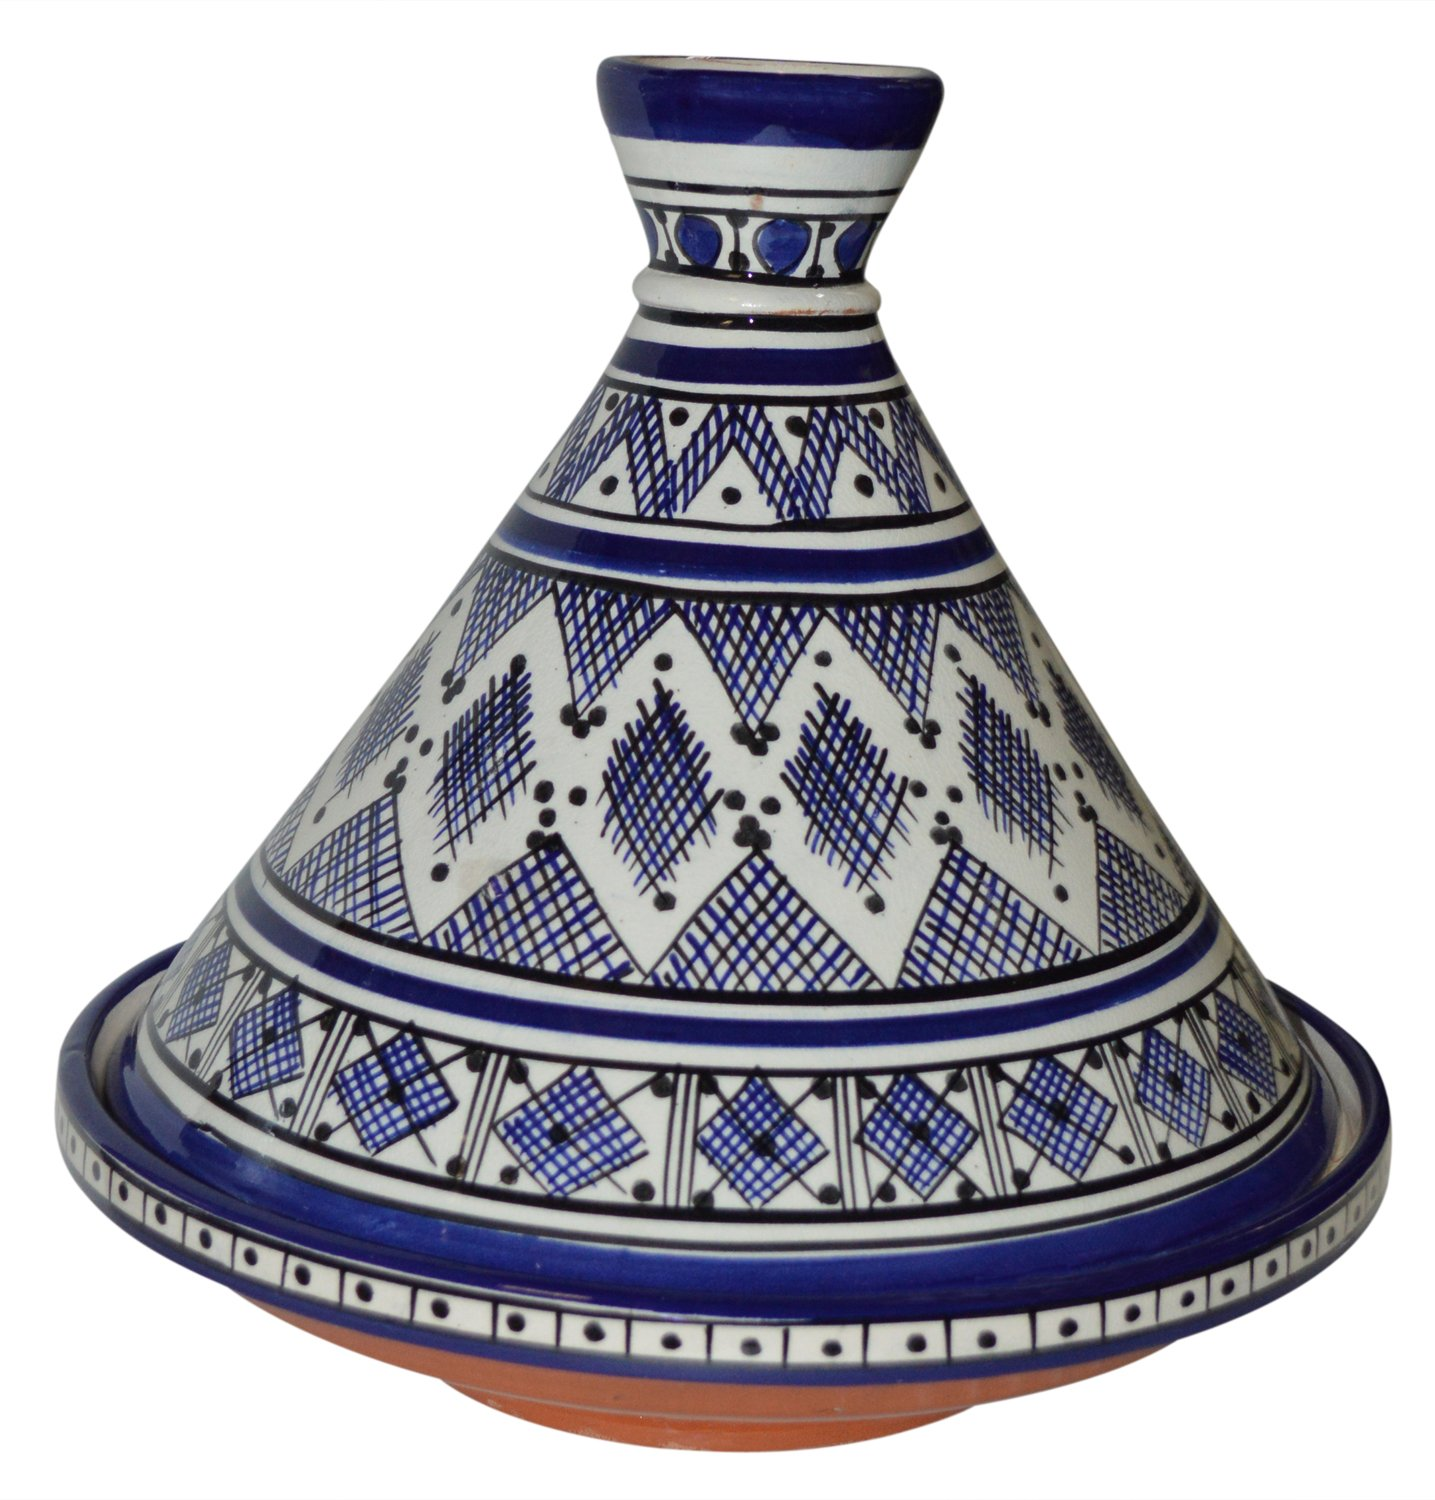 Moroccan Handmade Serving Tagine Exquisite Ceramic With Vivid colors Traditional 12 inches Diameter